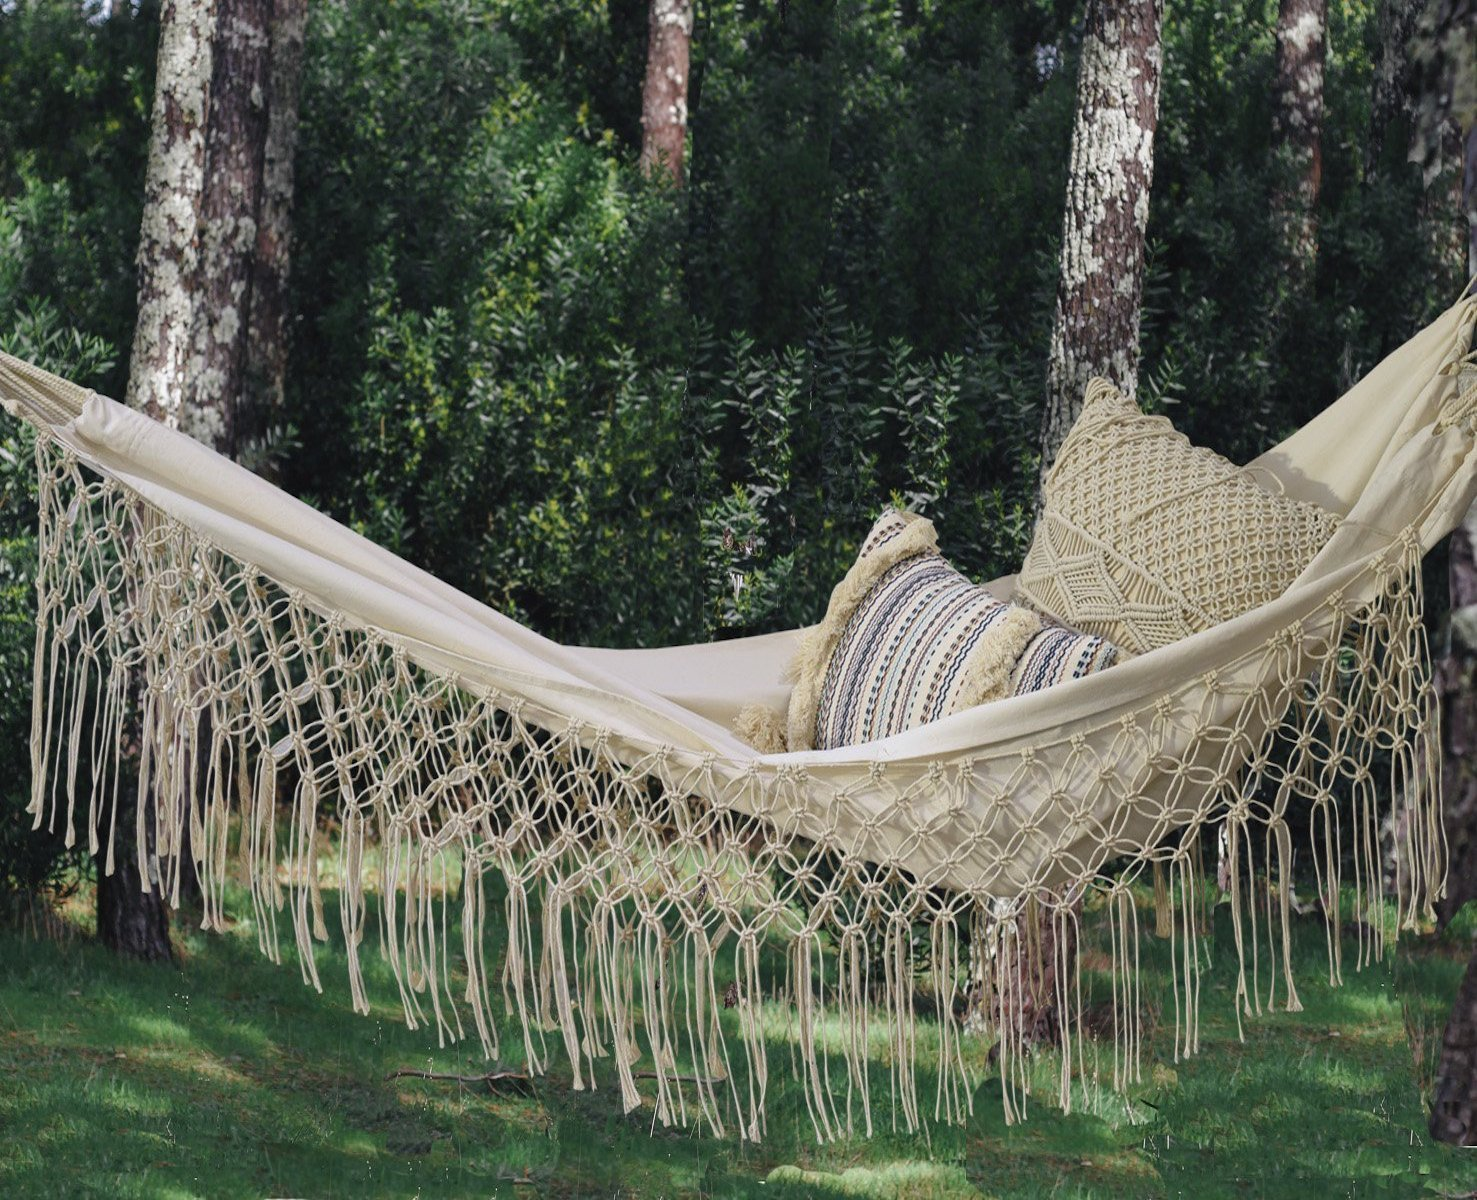 Fringed Macramé Hammock Cotton Tree Hammock Swing Bed for Patio,79'' Lx59 W